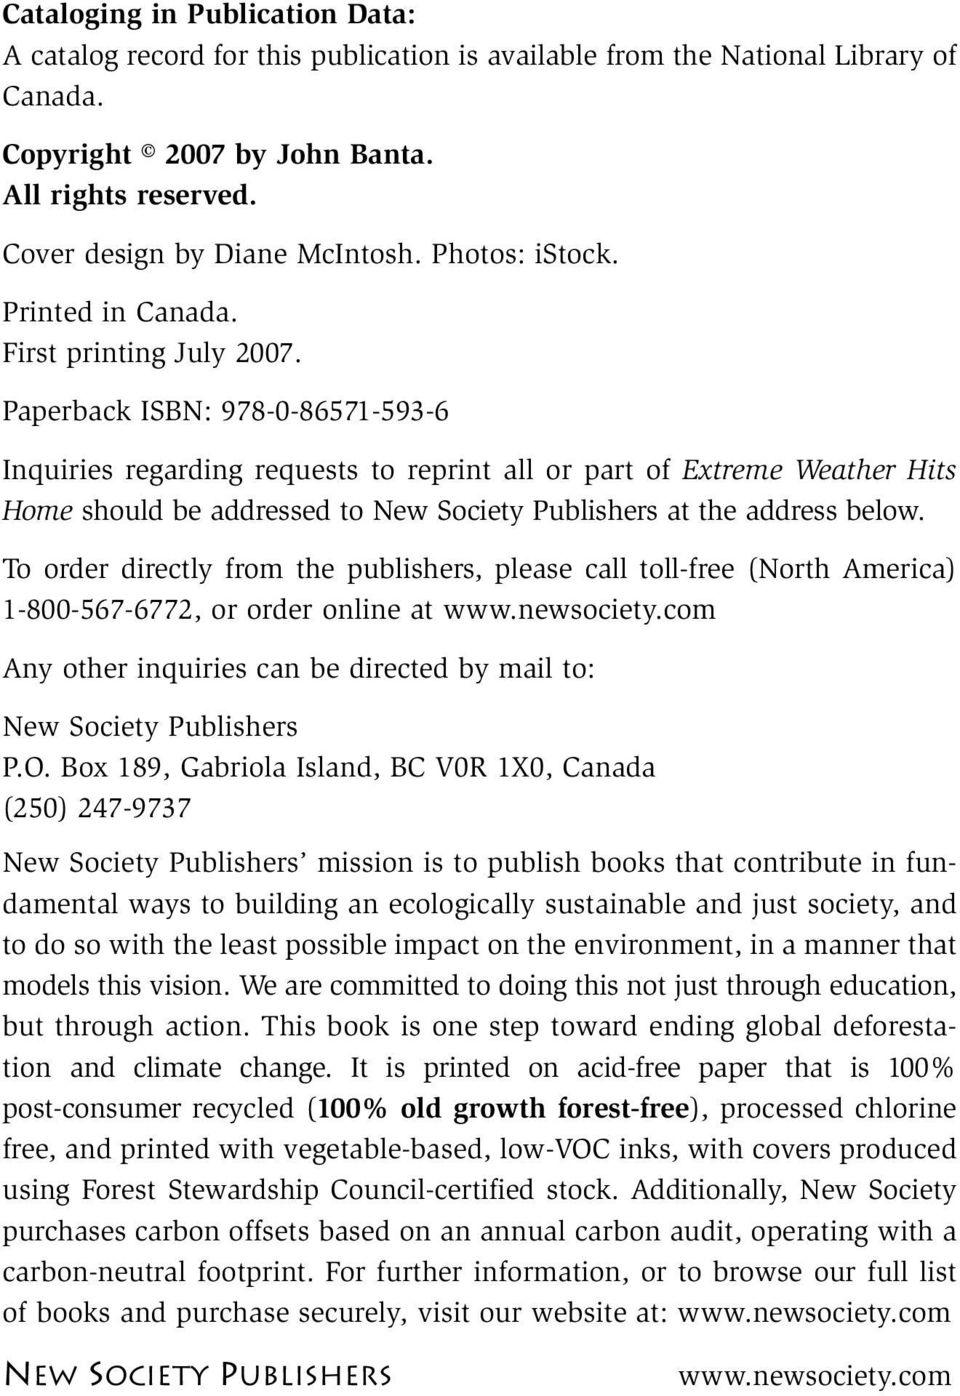 Paperback ISBN: 978-0-86571-593-6 Inquiries regarding requests to reprint all or part of Extreme Weather Hits Home should be addressed to New Society Publishers at the address below.